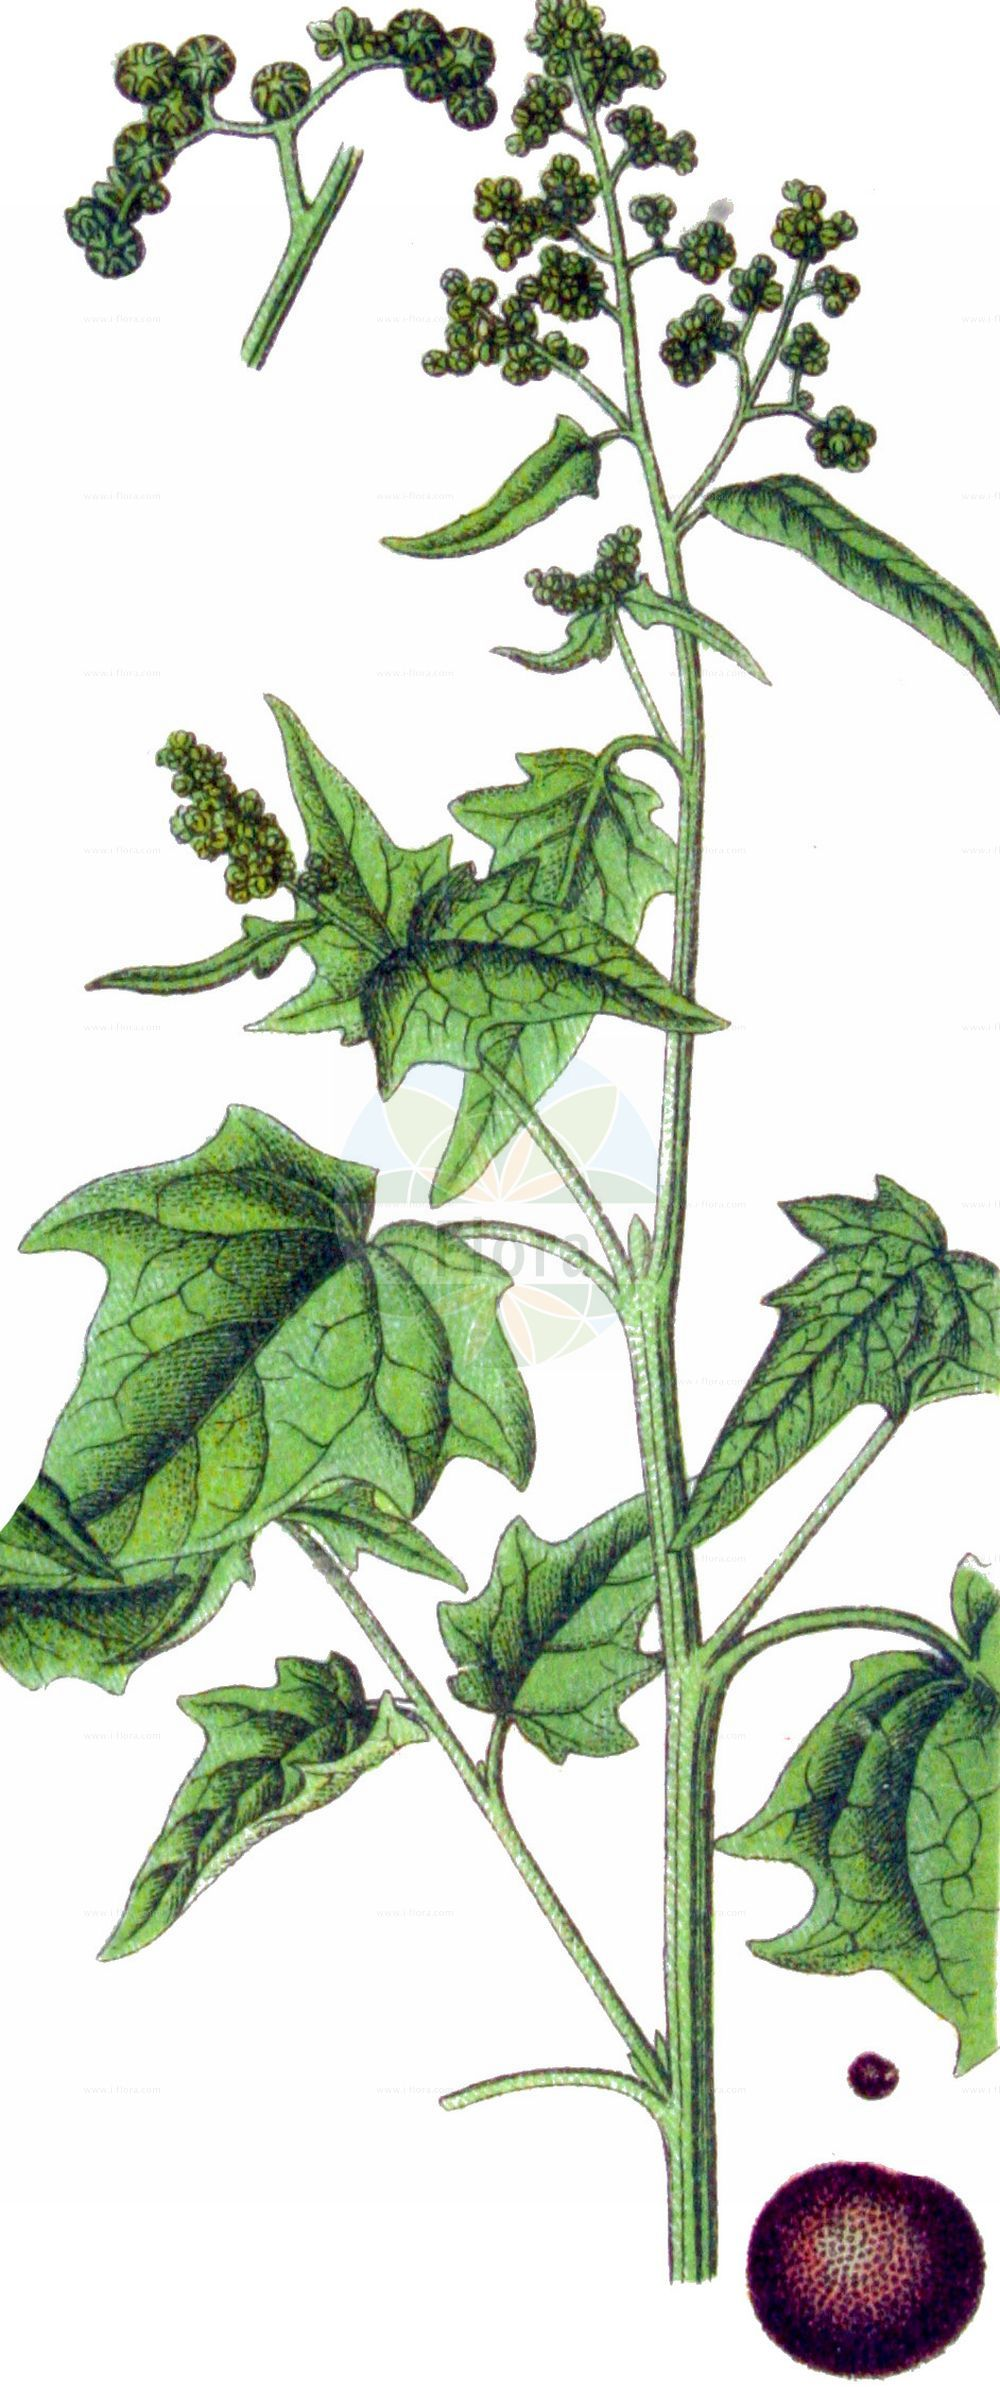 Historische Abbildung von Chenopodiastrum hybridum (Breitblaettriger Gaensefuss - Maple-leaved Goosefoot). Das Bild zeigt Blatt, Bluete, Frucht und Same. ---- Historical Drawing of Chenopodiastrum hybridum (Breitblaettriger Gaensefuss - Maple-leaved Goosefoot).The image is showing leaf, flower, fruit and seed.(Chenopodiastrum hybridum,Breitblaettriger Gaensefuss,Maple-leaved Goosefoot,Chenopodiastrum hybridum,Chenopodium angulosum,Chenopodium hybridum,Breitblaettriger Gaensefuss,Bastard-Gaensefuss,Sautod-Gaensefuss,Stechapfelblaettriger Gaensefuss,Maple-leaved Goosefoot,Bigseed Goosefoot,Maple-leaf Goosefoot,Sowbane,Chenopodiastrum,Amaranthaceae,Fuchsschwanzgewaechse,Pigweed family,Blatt,Bluete,Frucht,Same,leaf,flower,fruit,seed,Sturm (1796f))